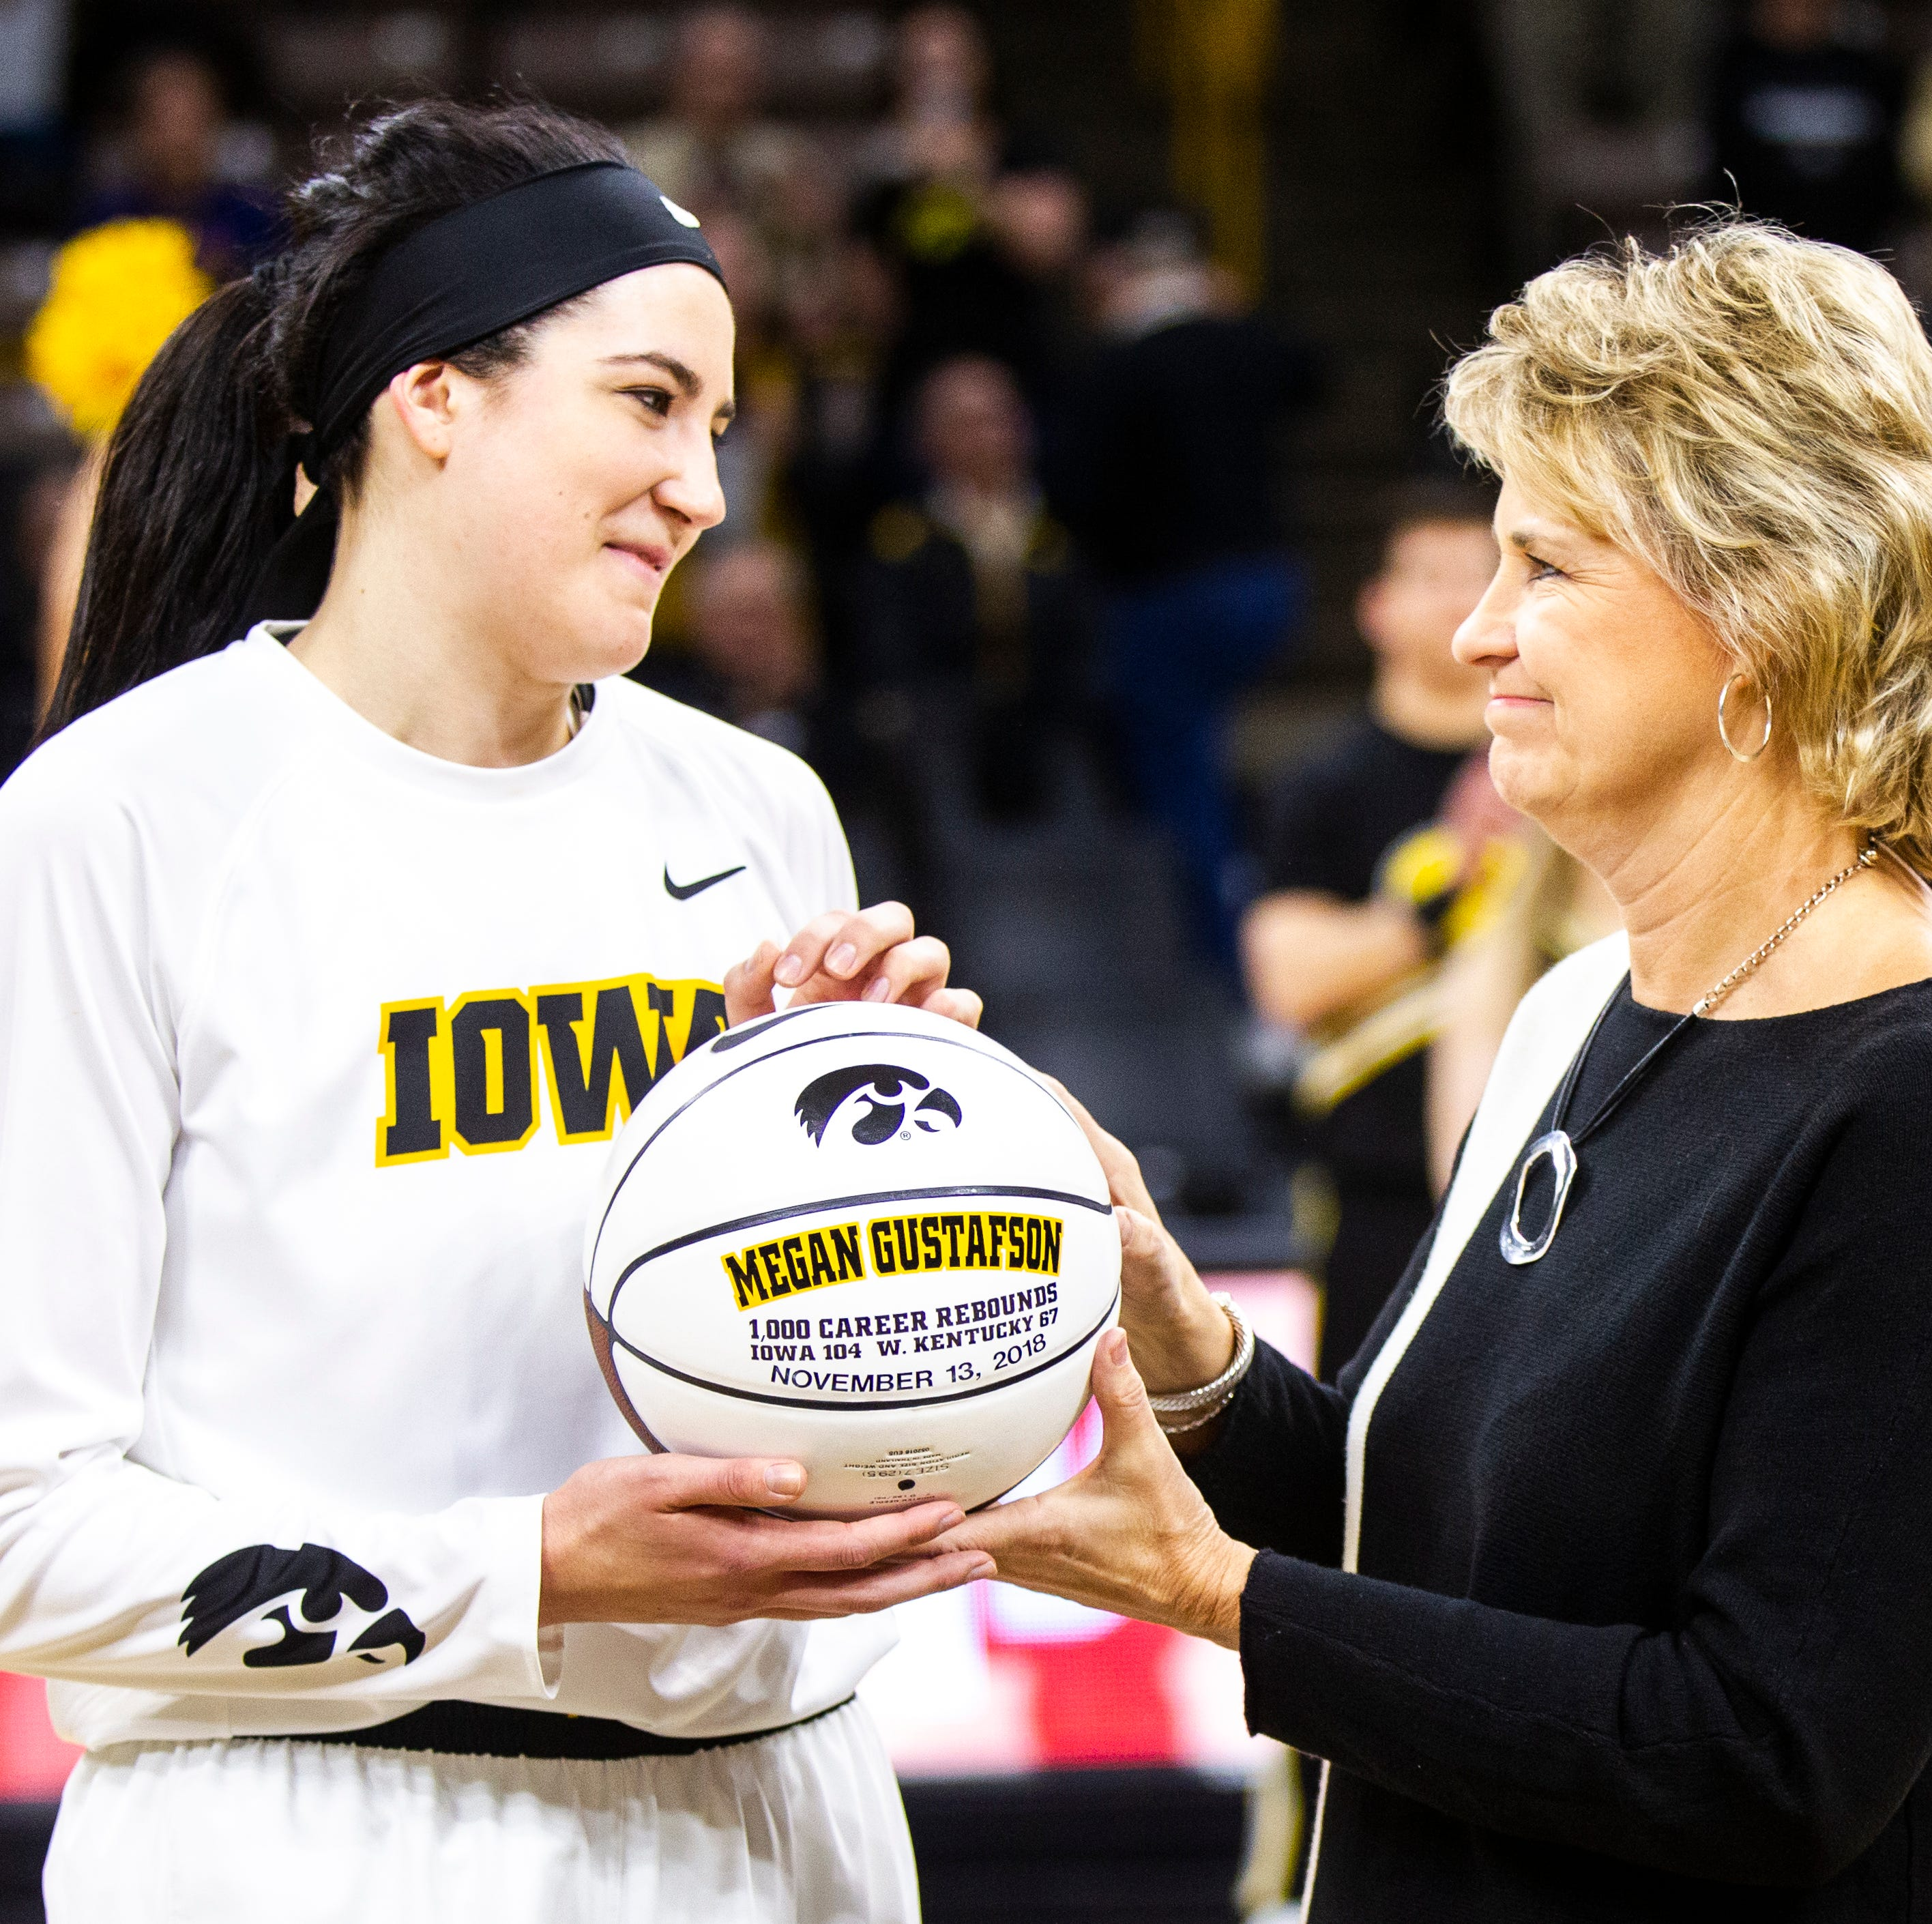 Iowa's Megan Gustafson caps 'amazing weekend' of awards with prestigious Naismith Trophy